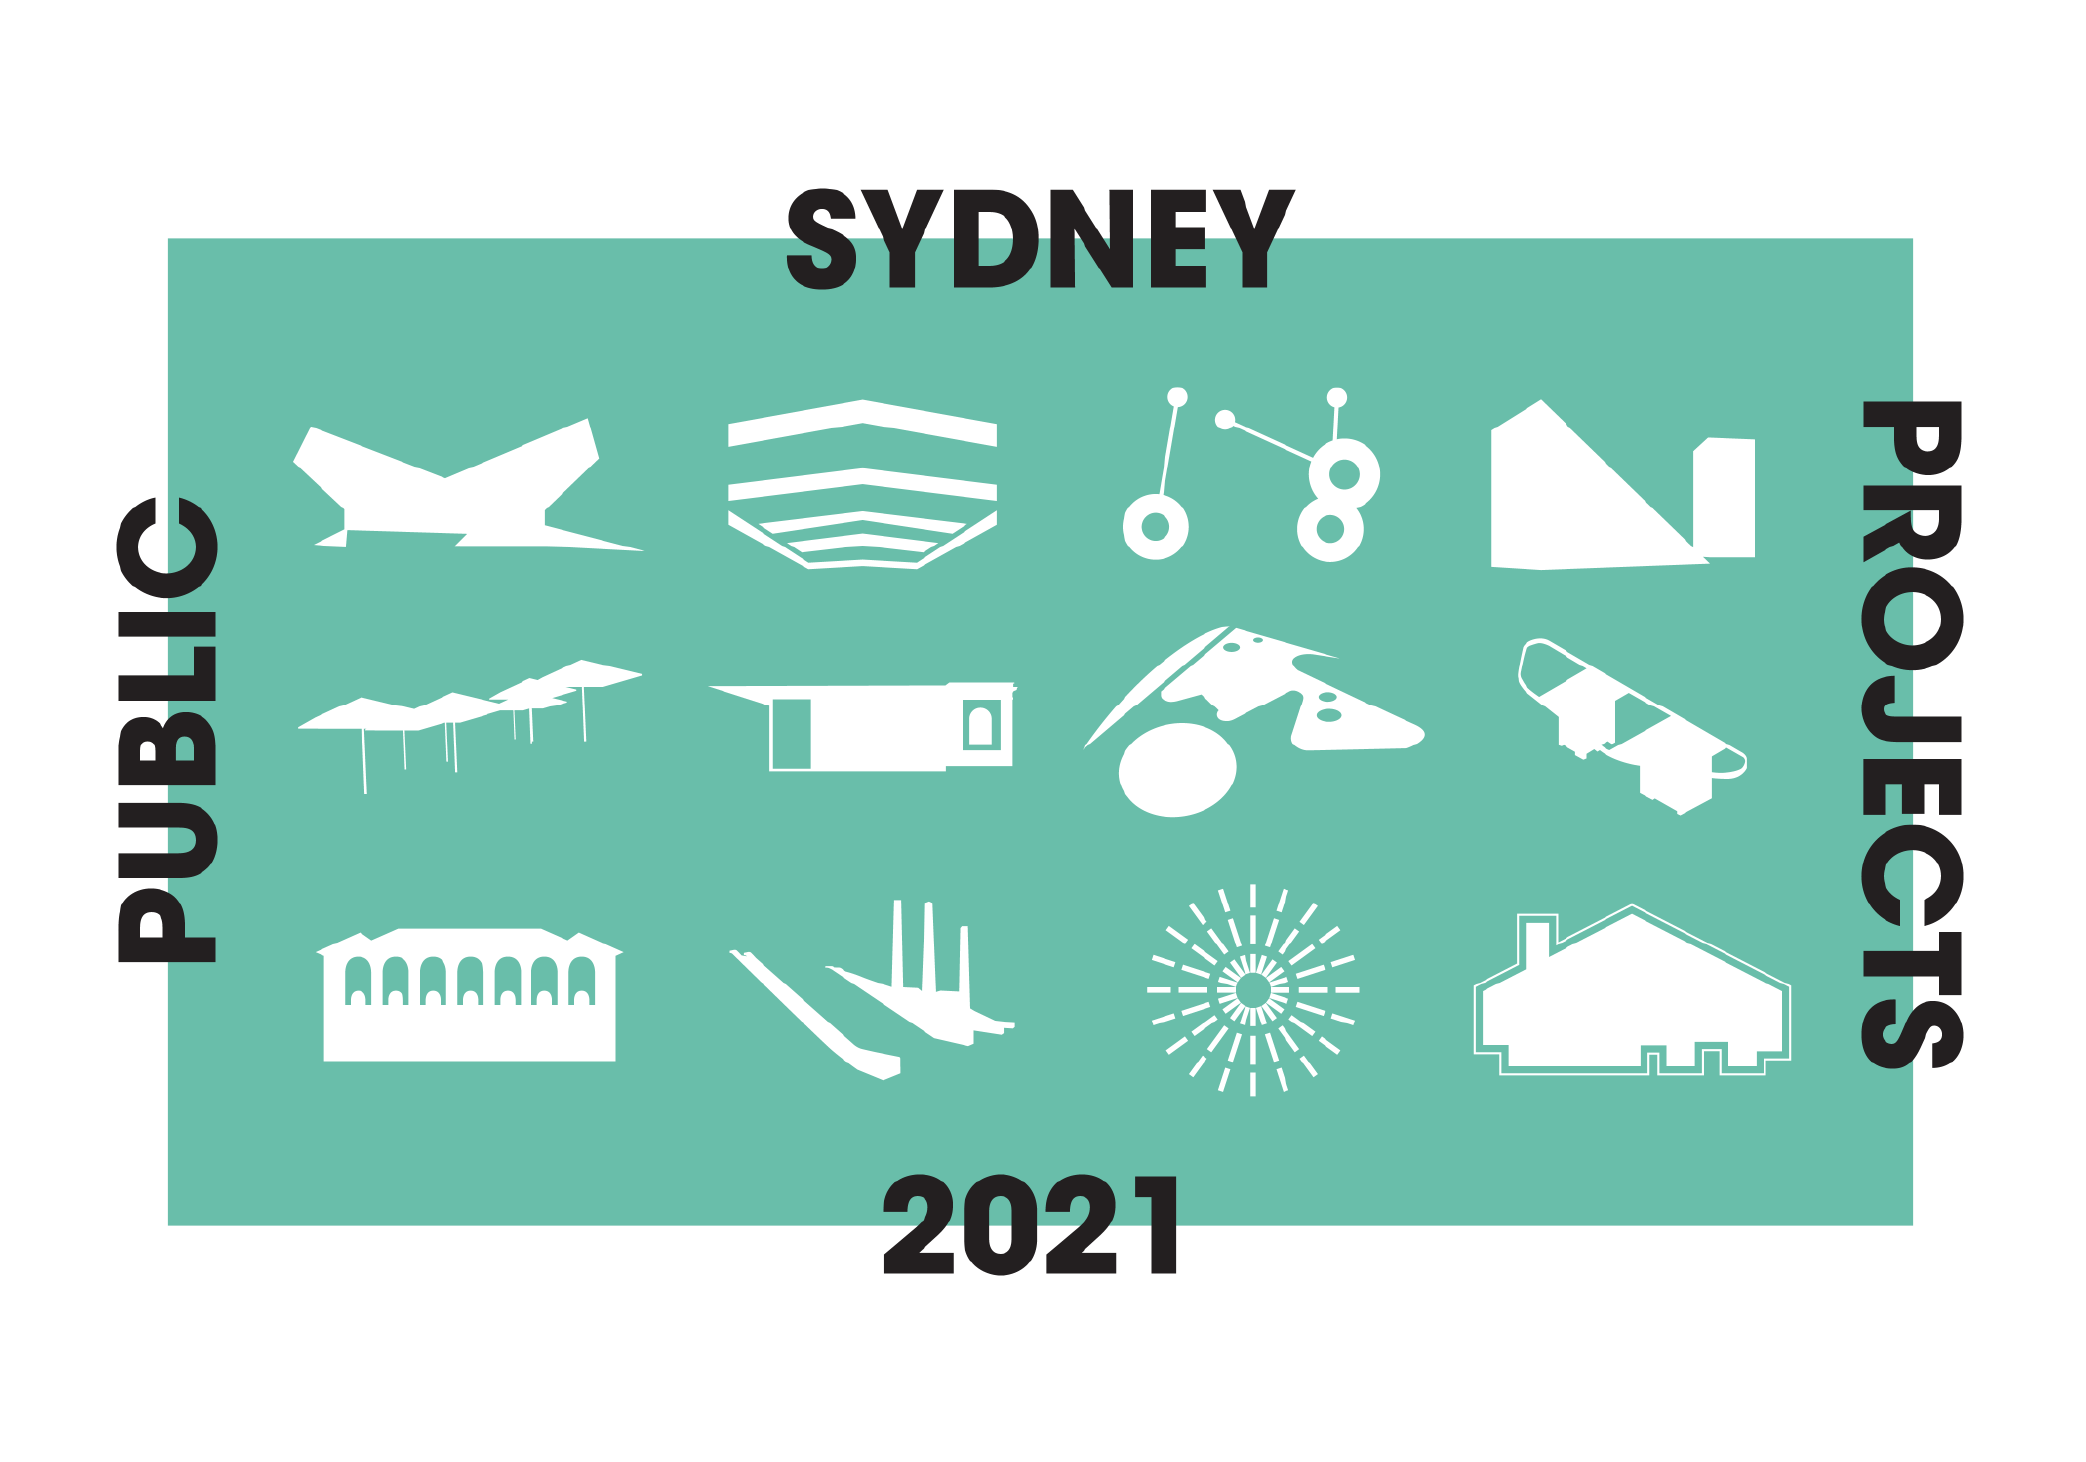 Public Sydney Projects